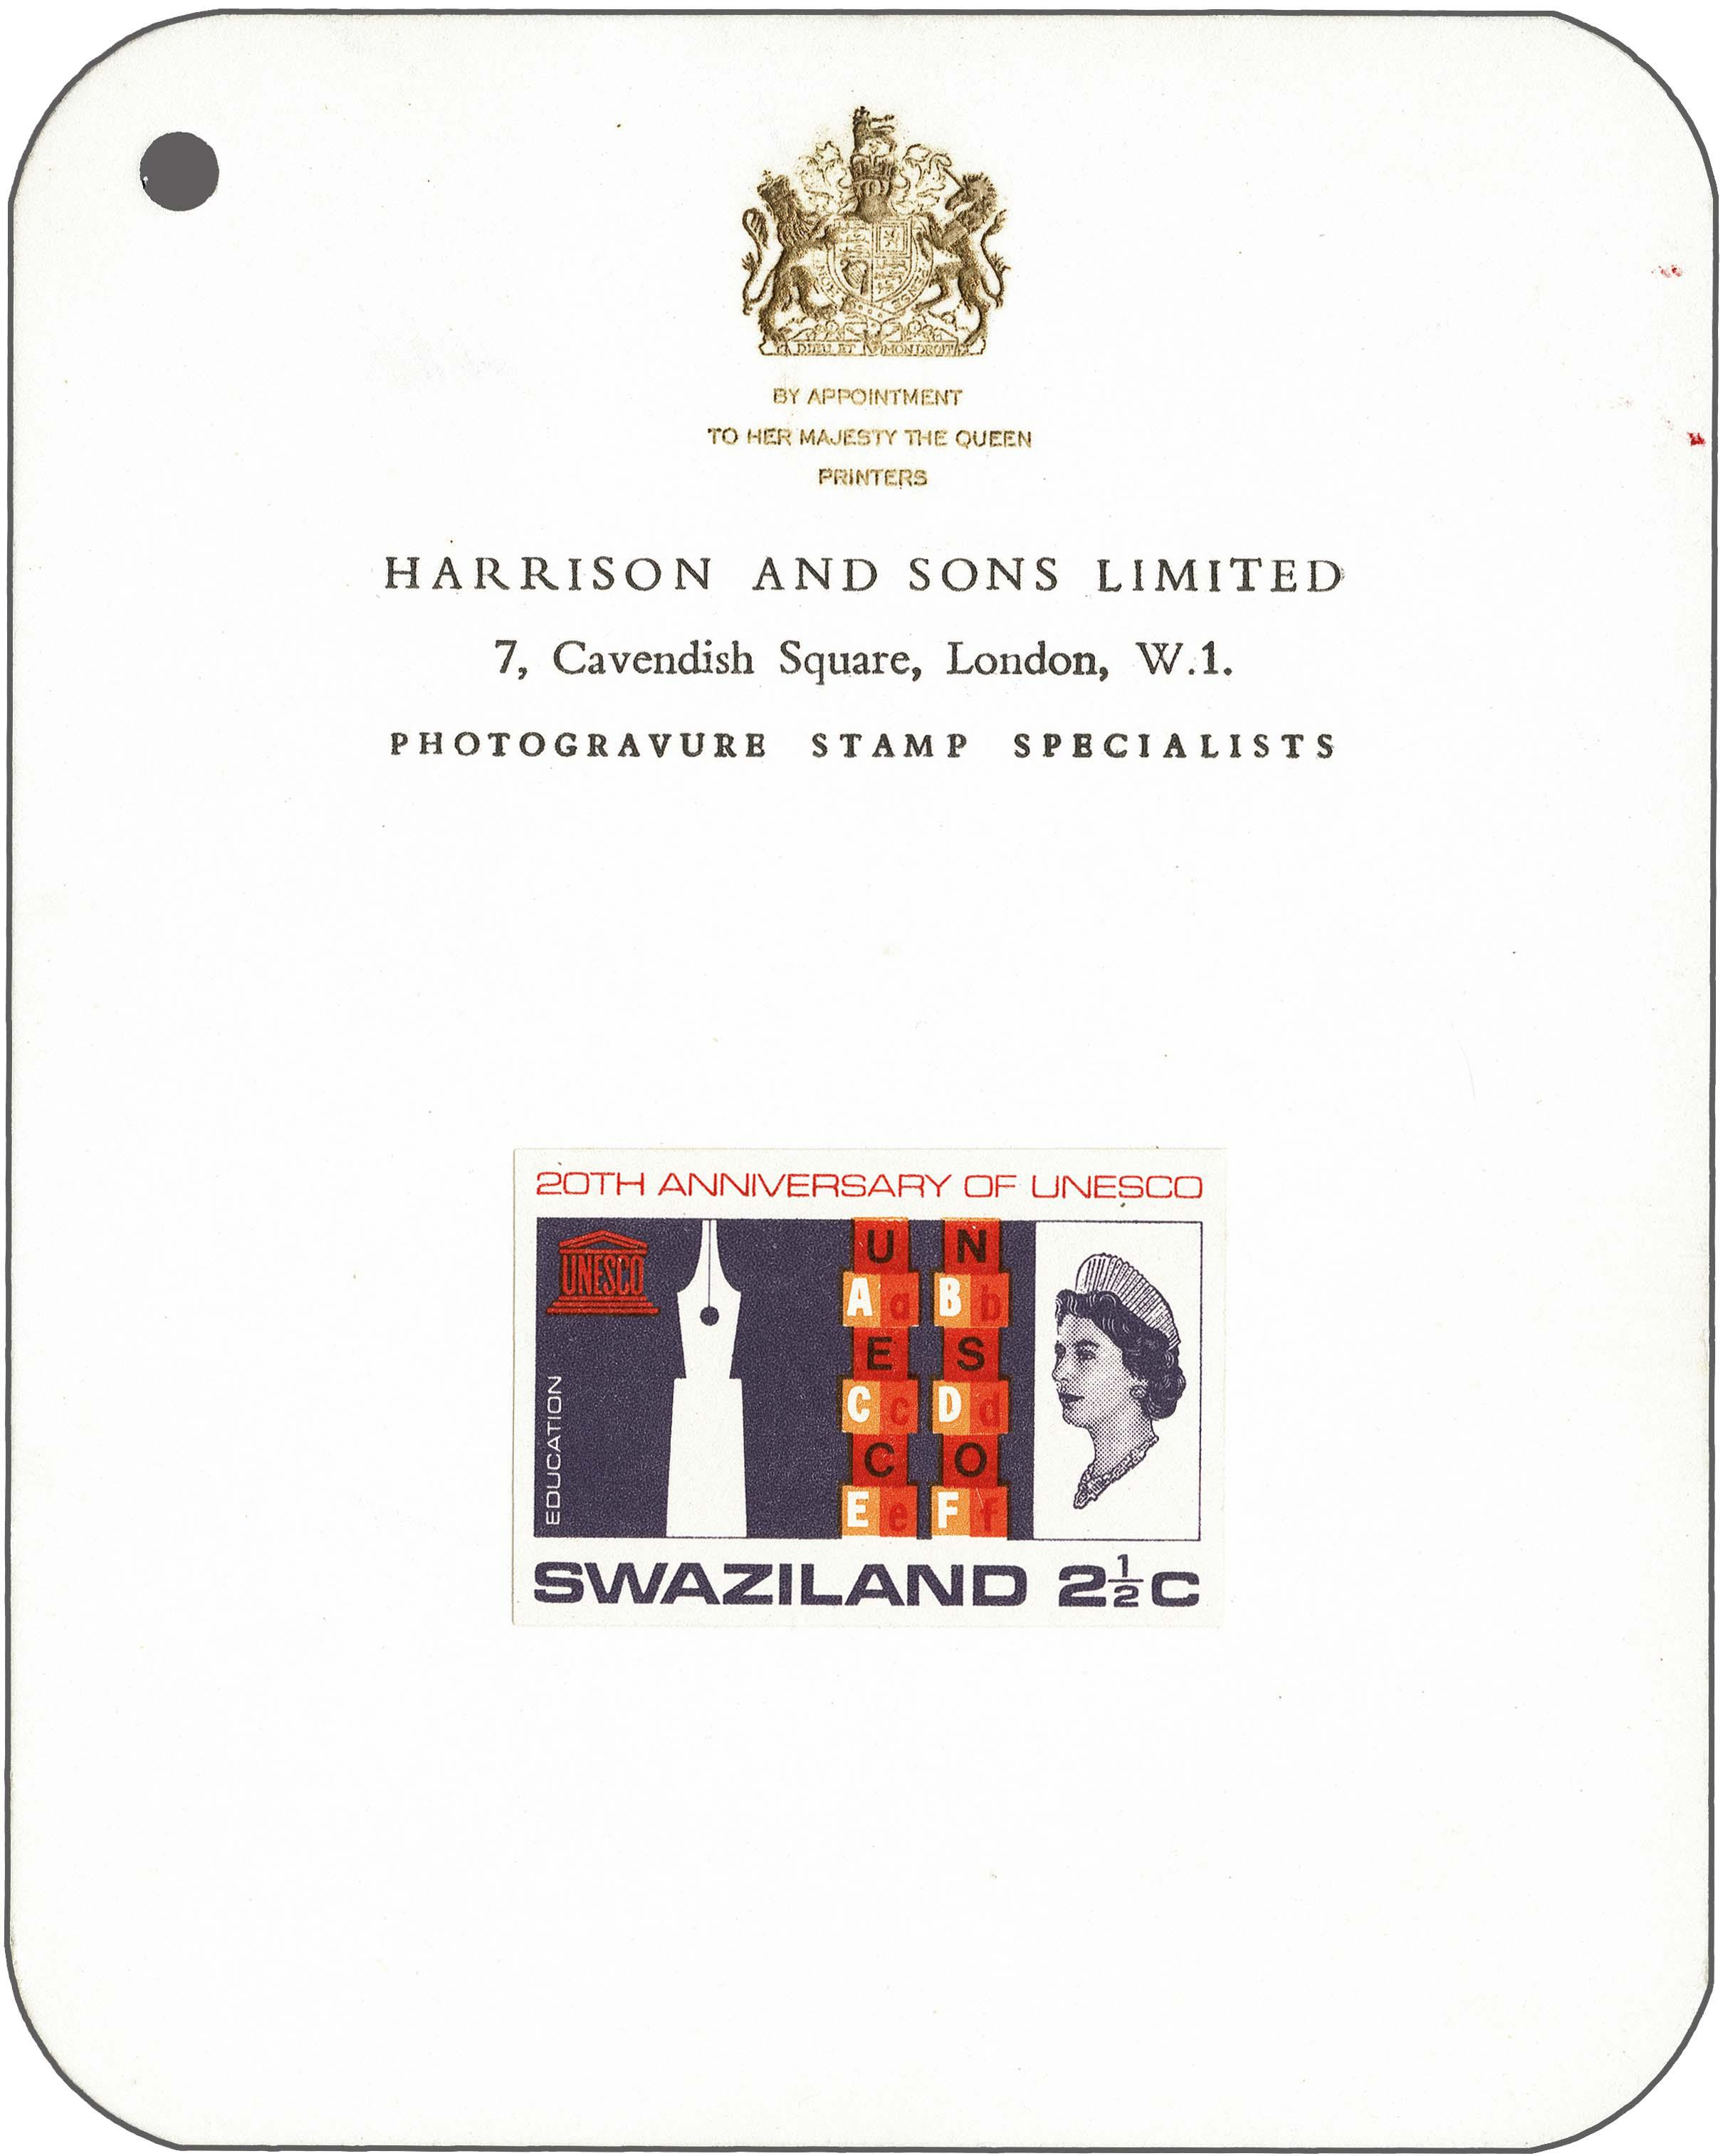 Lot 189 - Great Britain and former colonies swaziland -  Corinphila Veilingen Auction 250-253 - Day 1 - Foreign countries